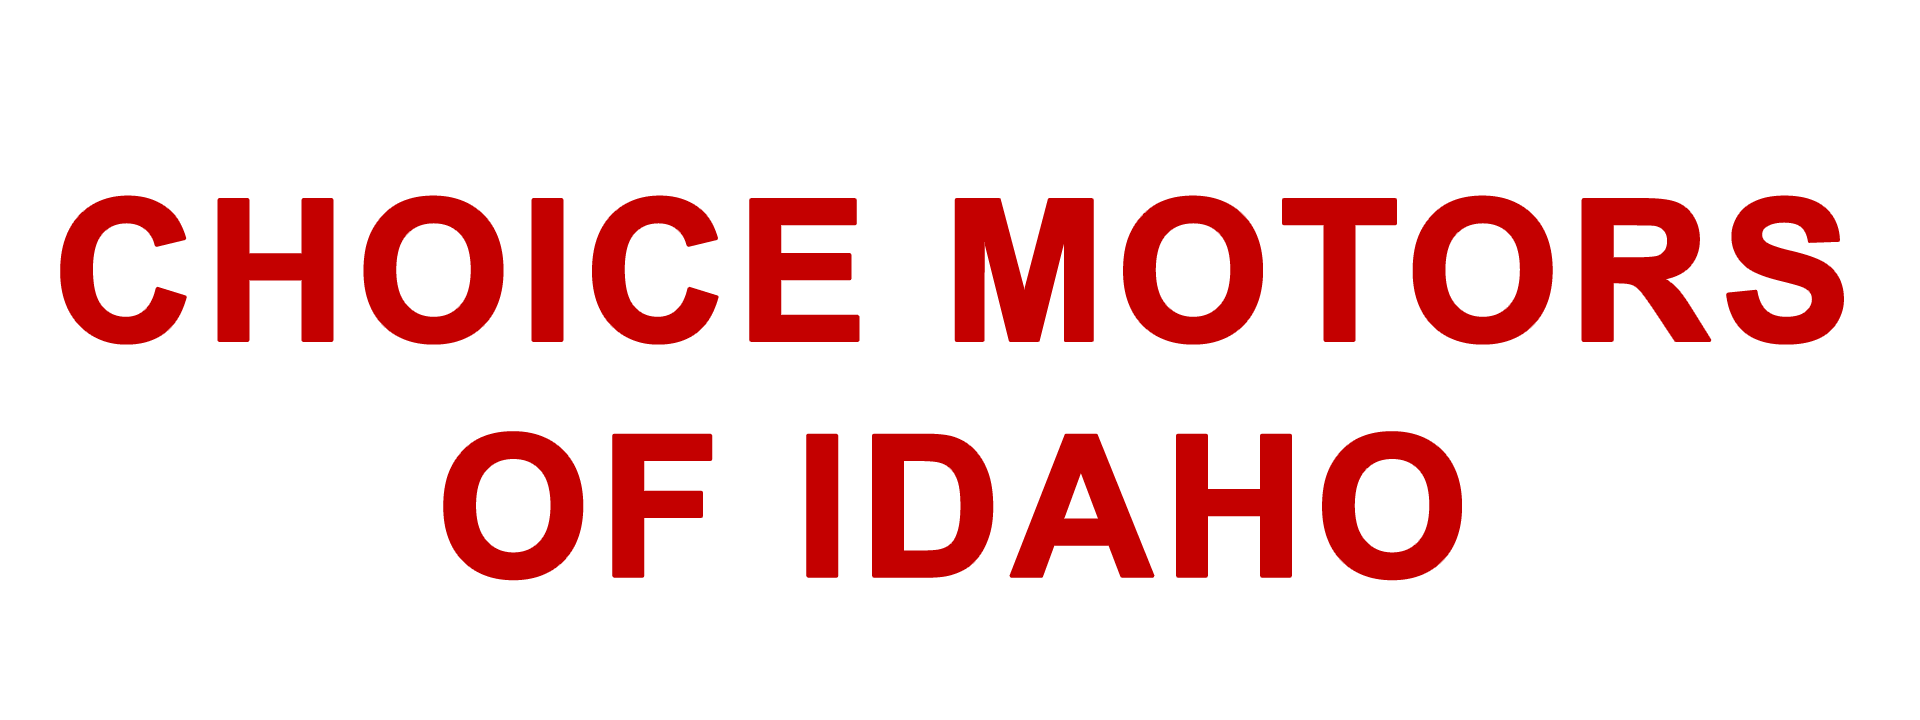 Choice Motors of Idaho